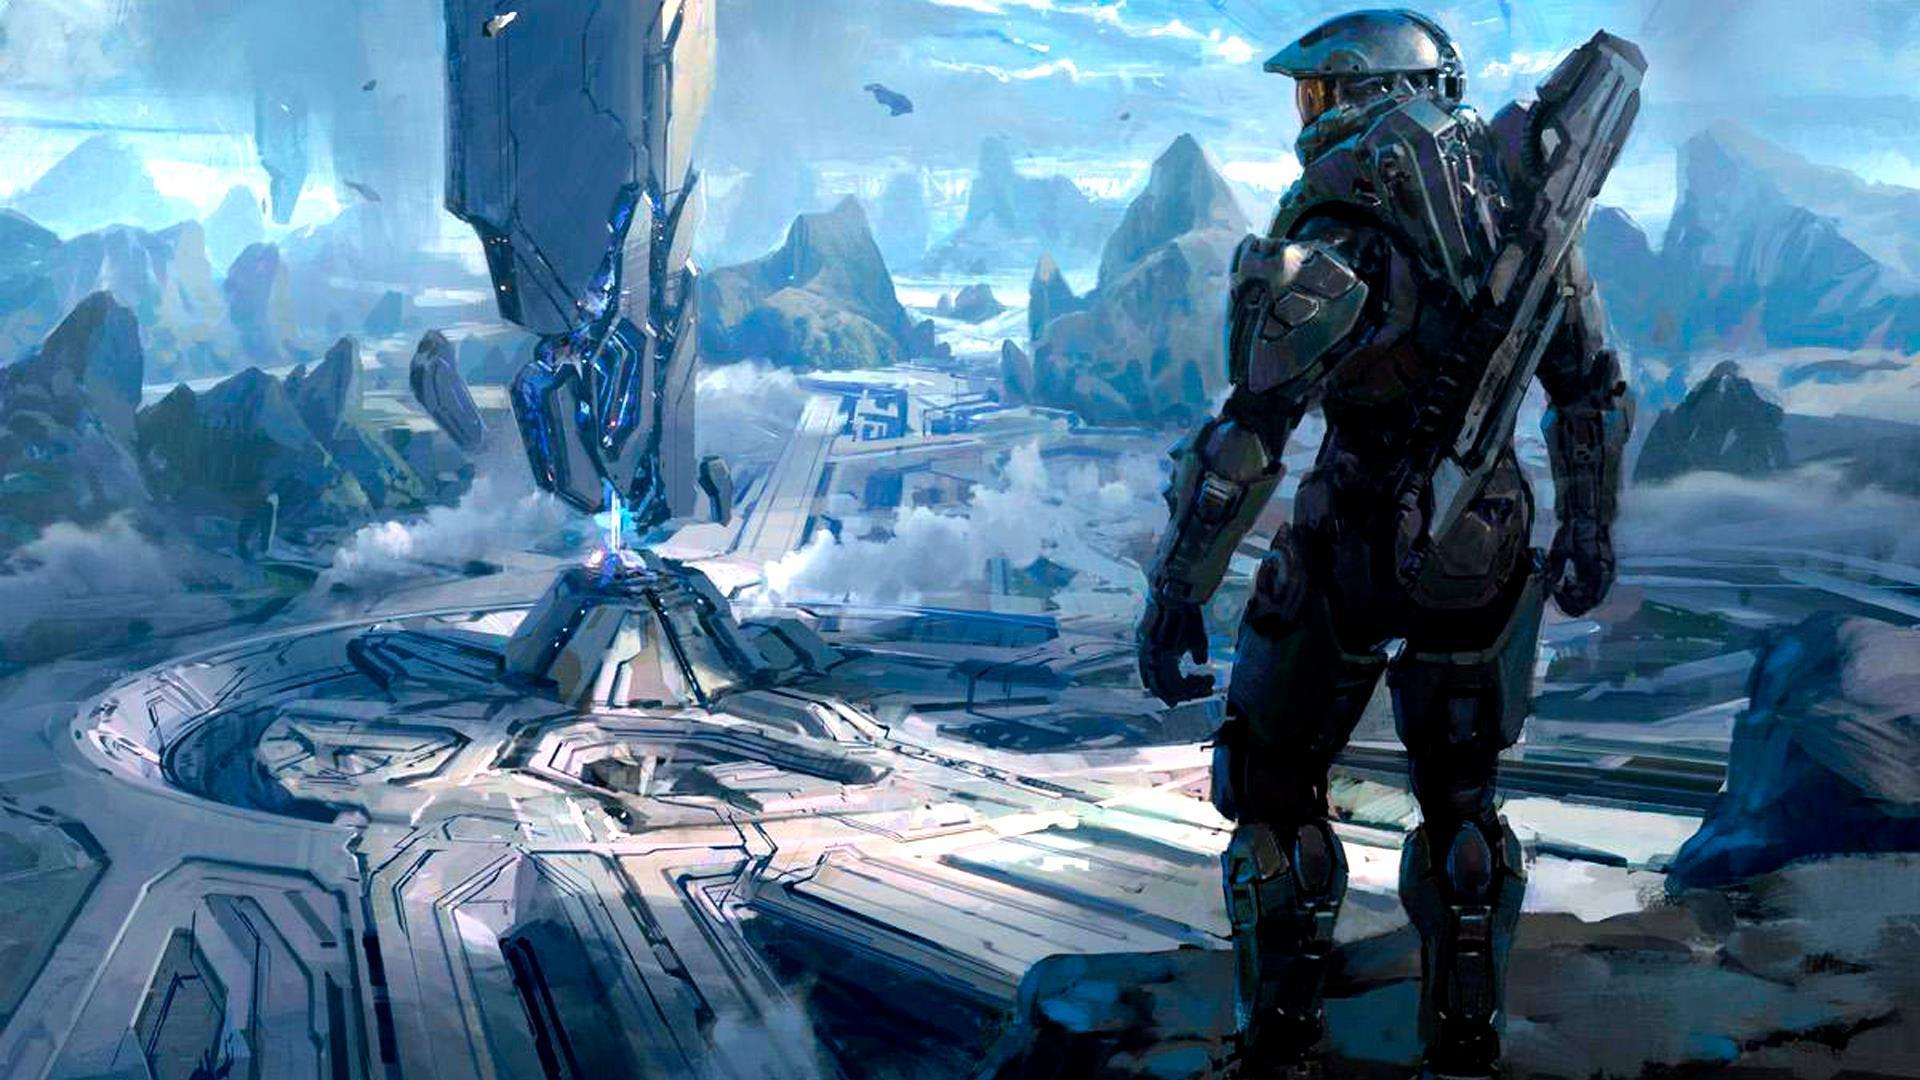 wallpaper free game halo - photo #5